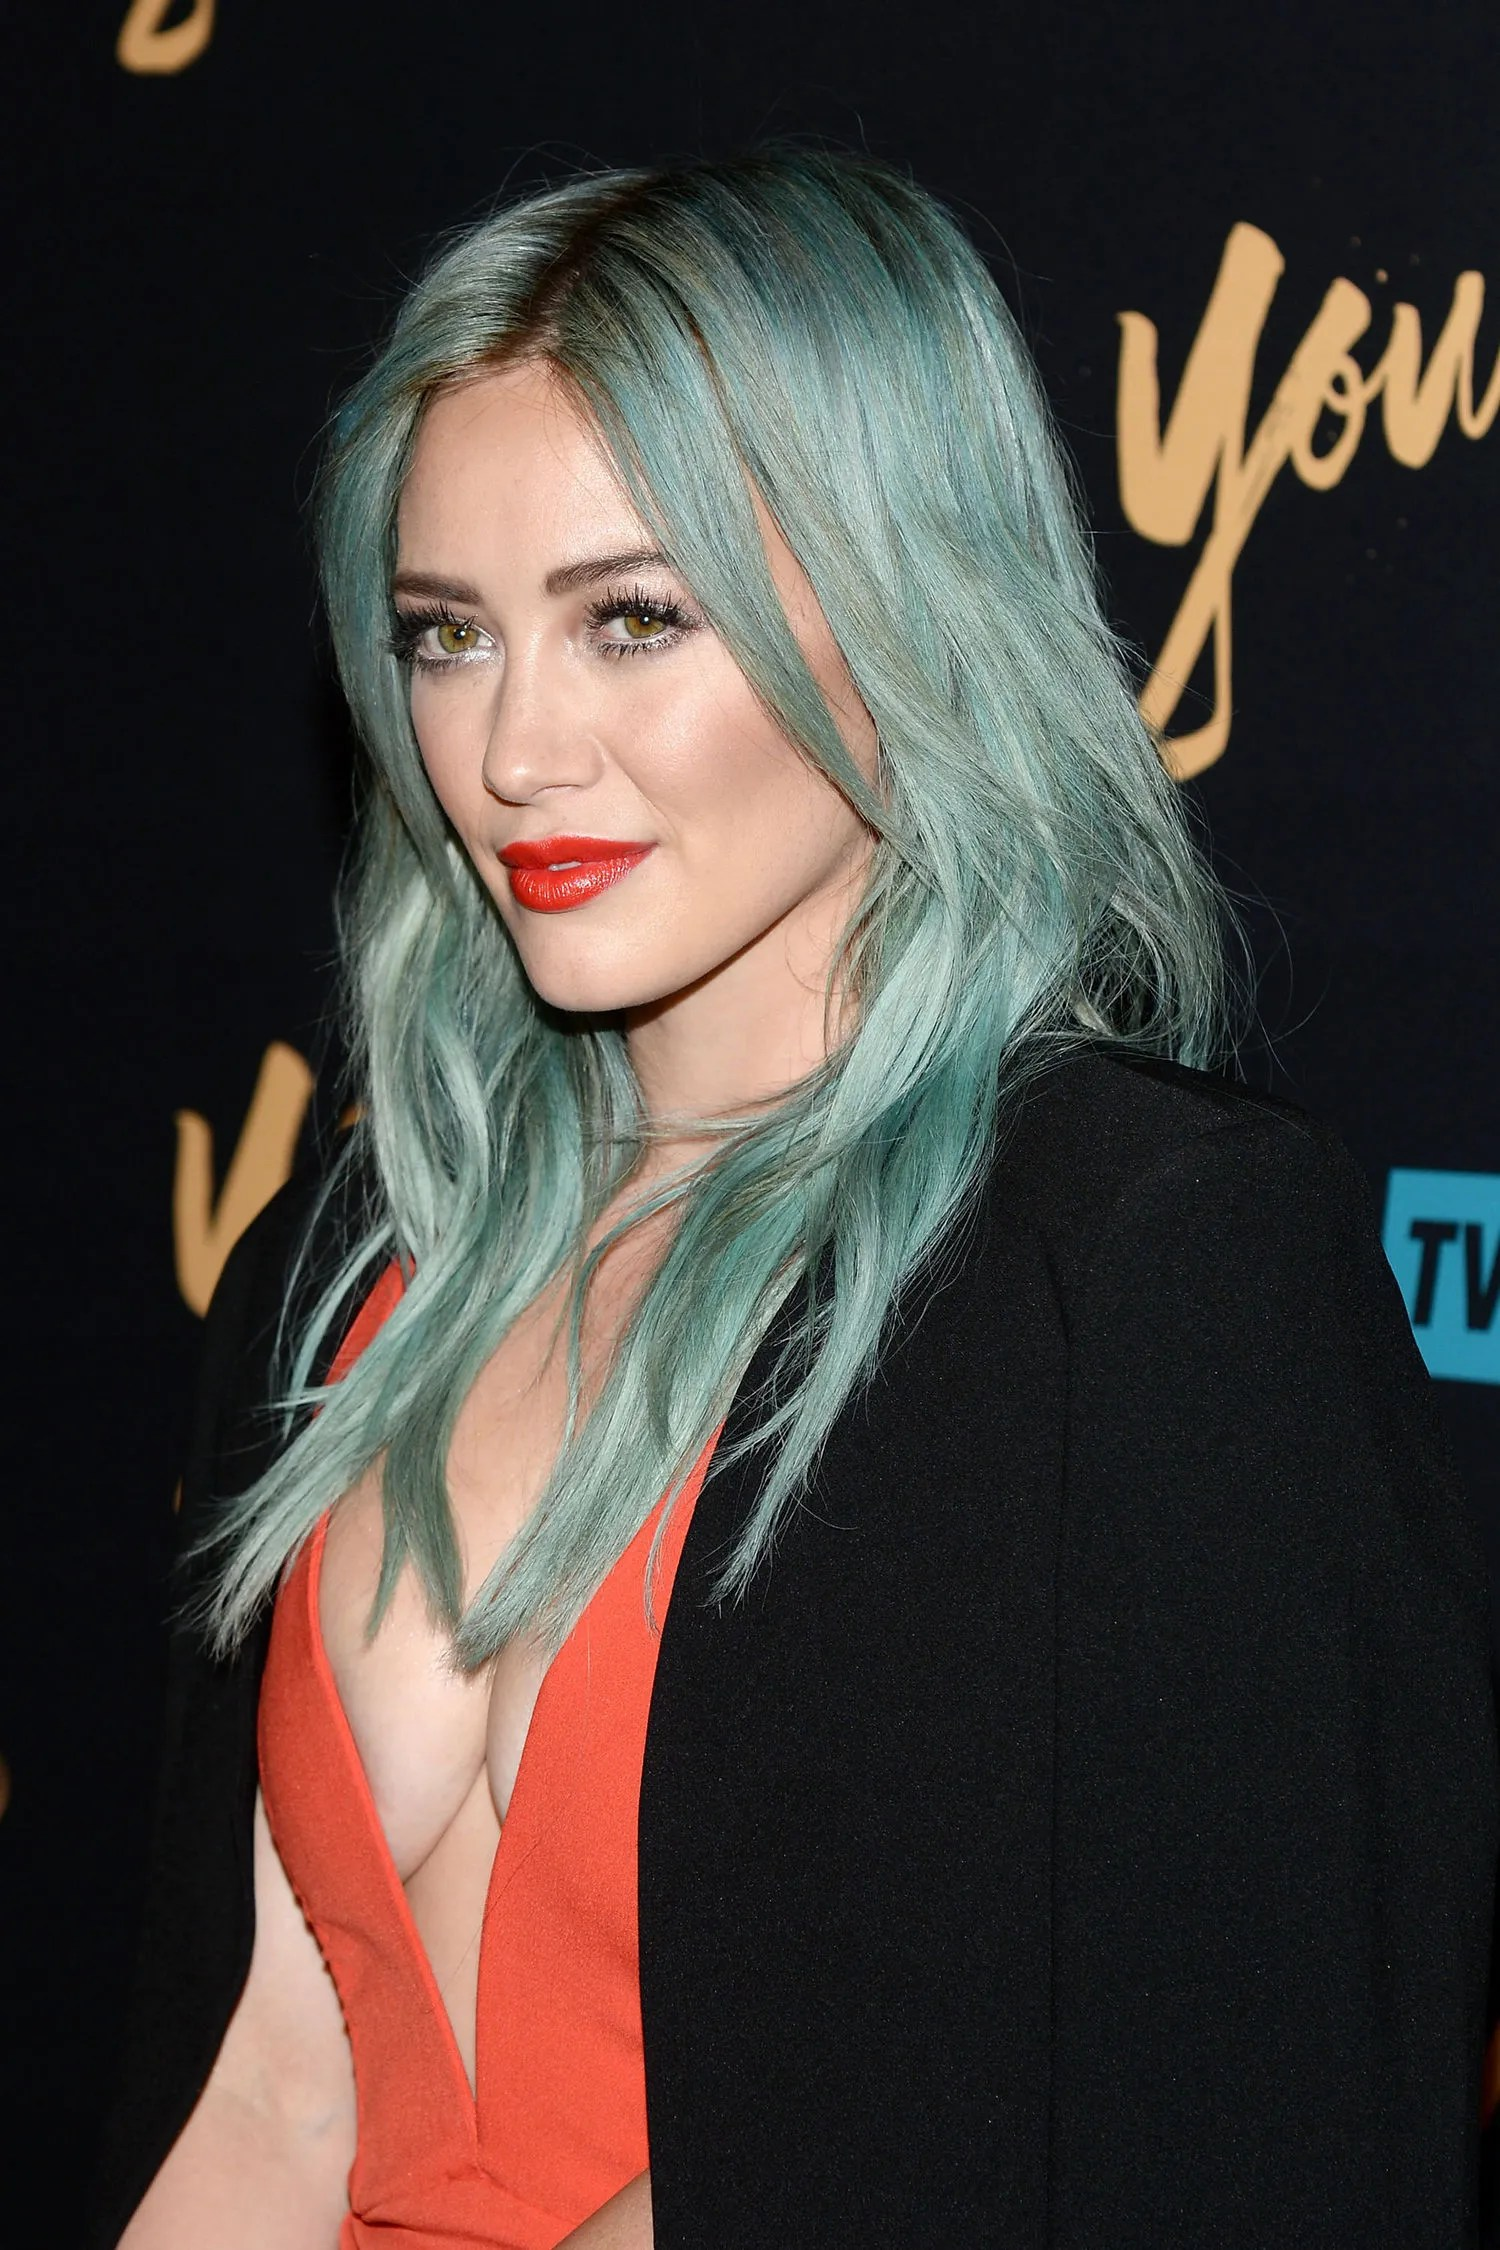 Hilary Duff Pairs Her Turquoise Hair With Red Lipstick At